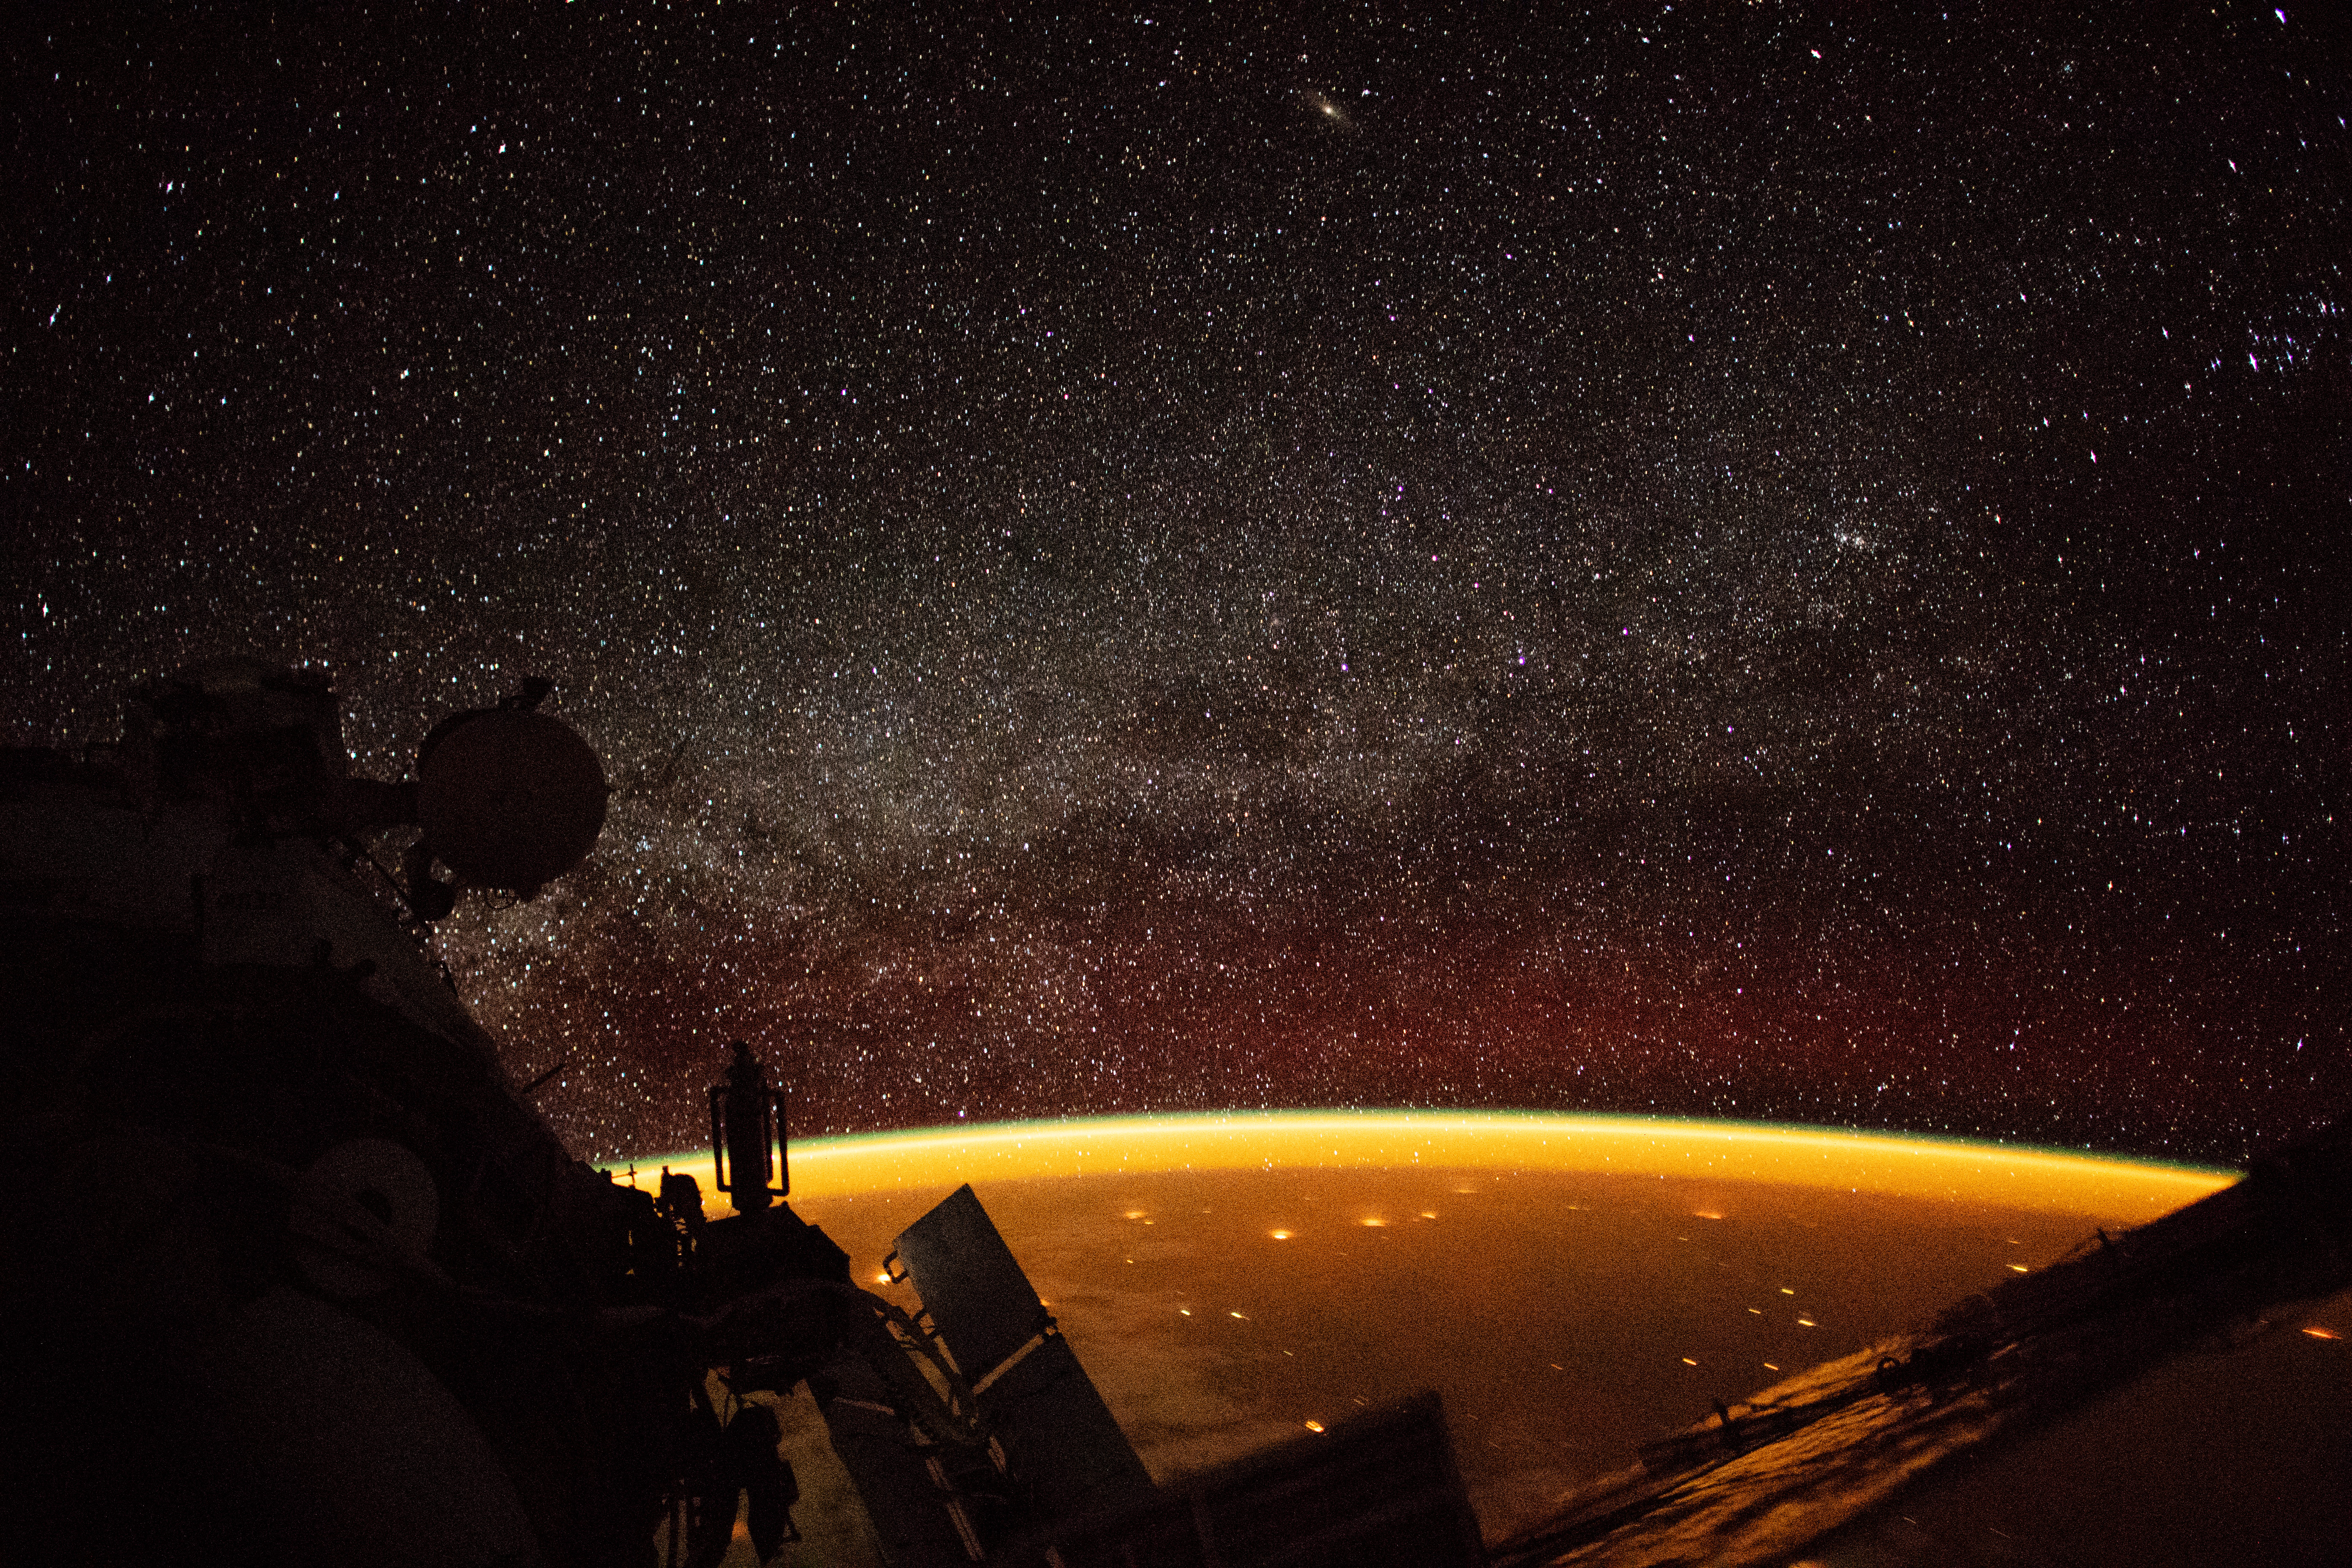 Earth Enveloped In Airglow Nasa Free for commercial use no attribution required high quality images. earth enveloped in airglow nasa